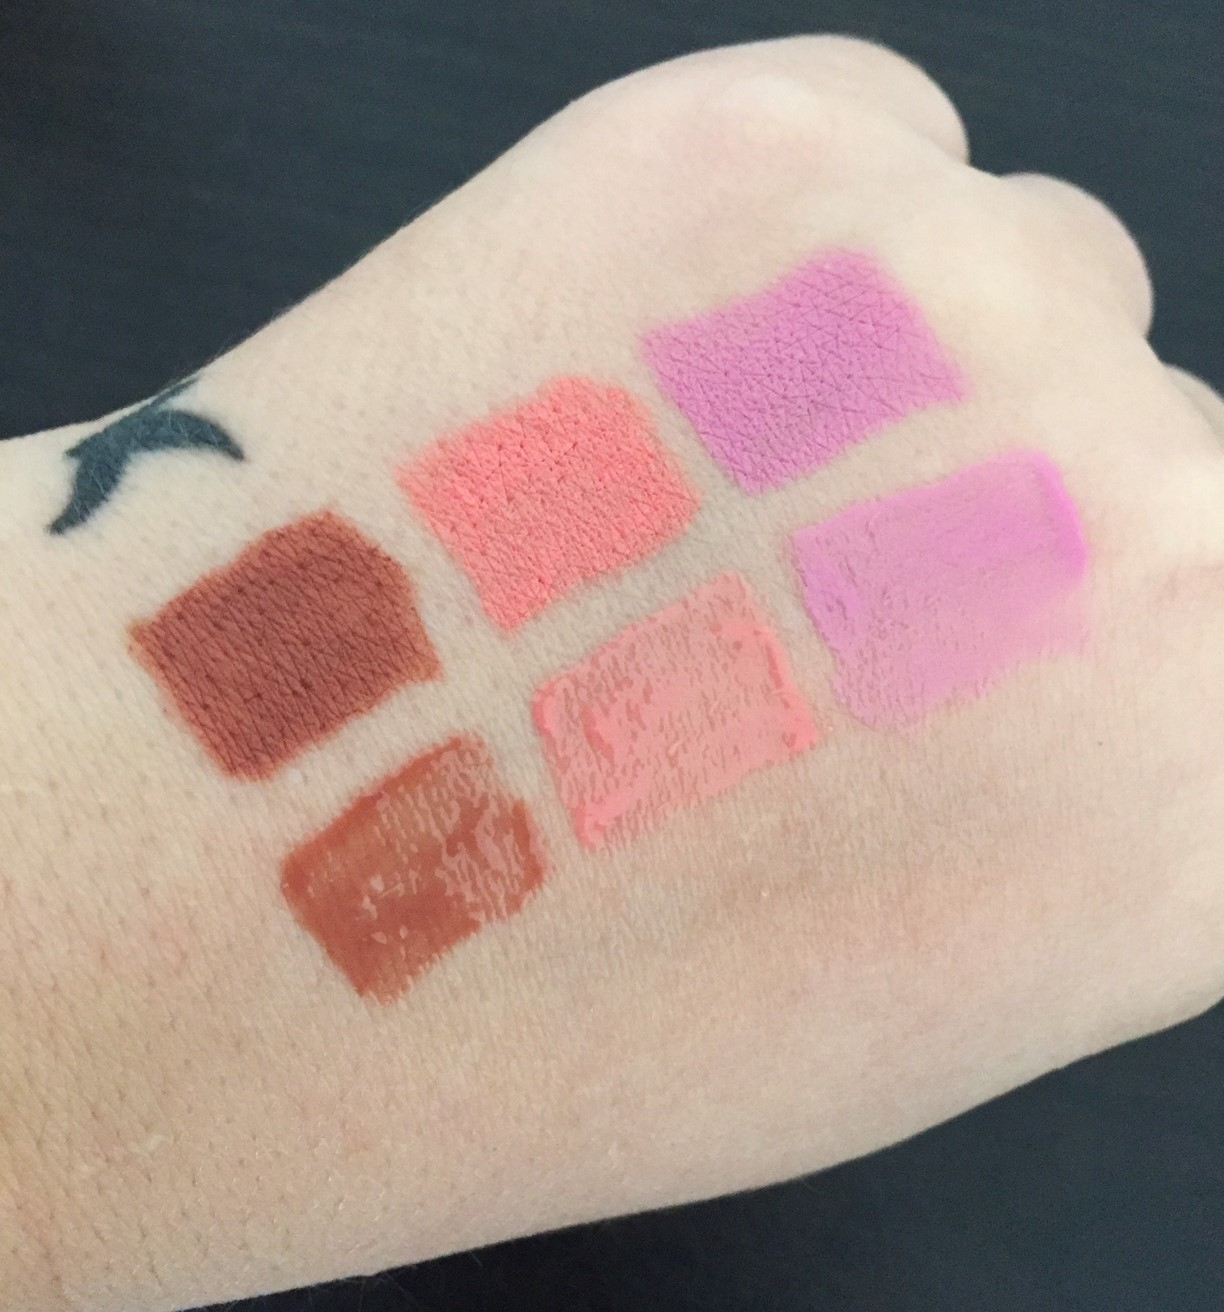 Lorac Lipstick and Glosses Swatches